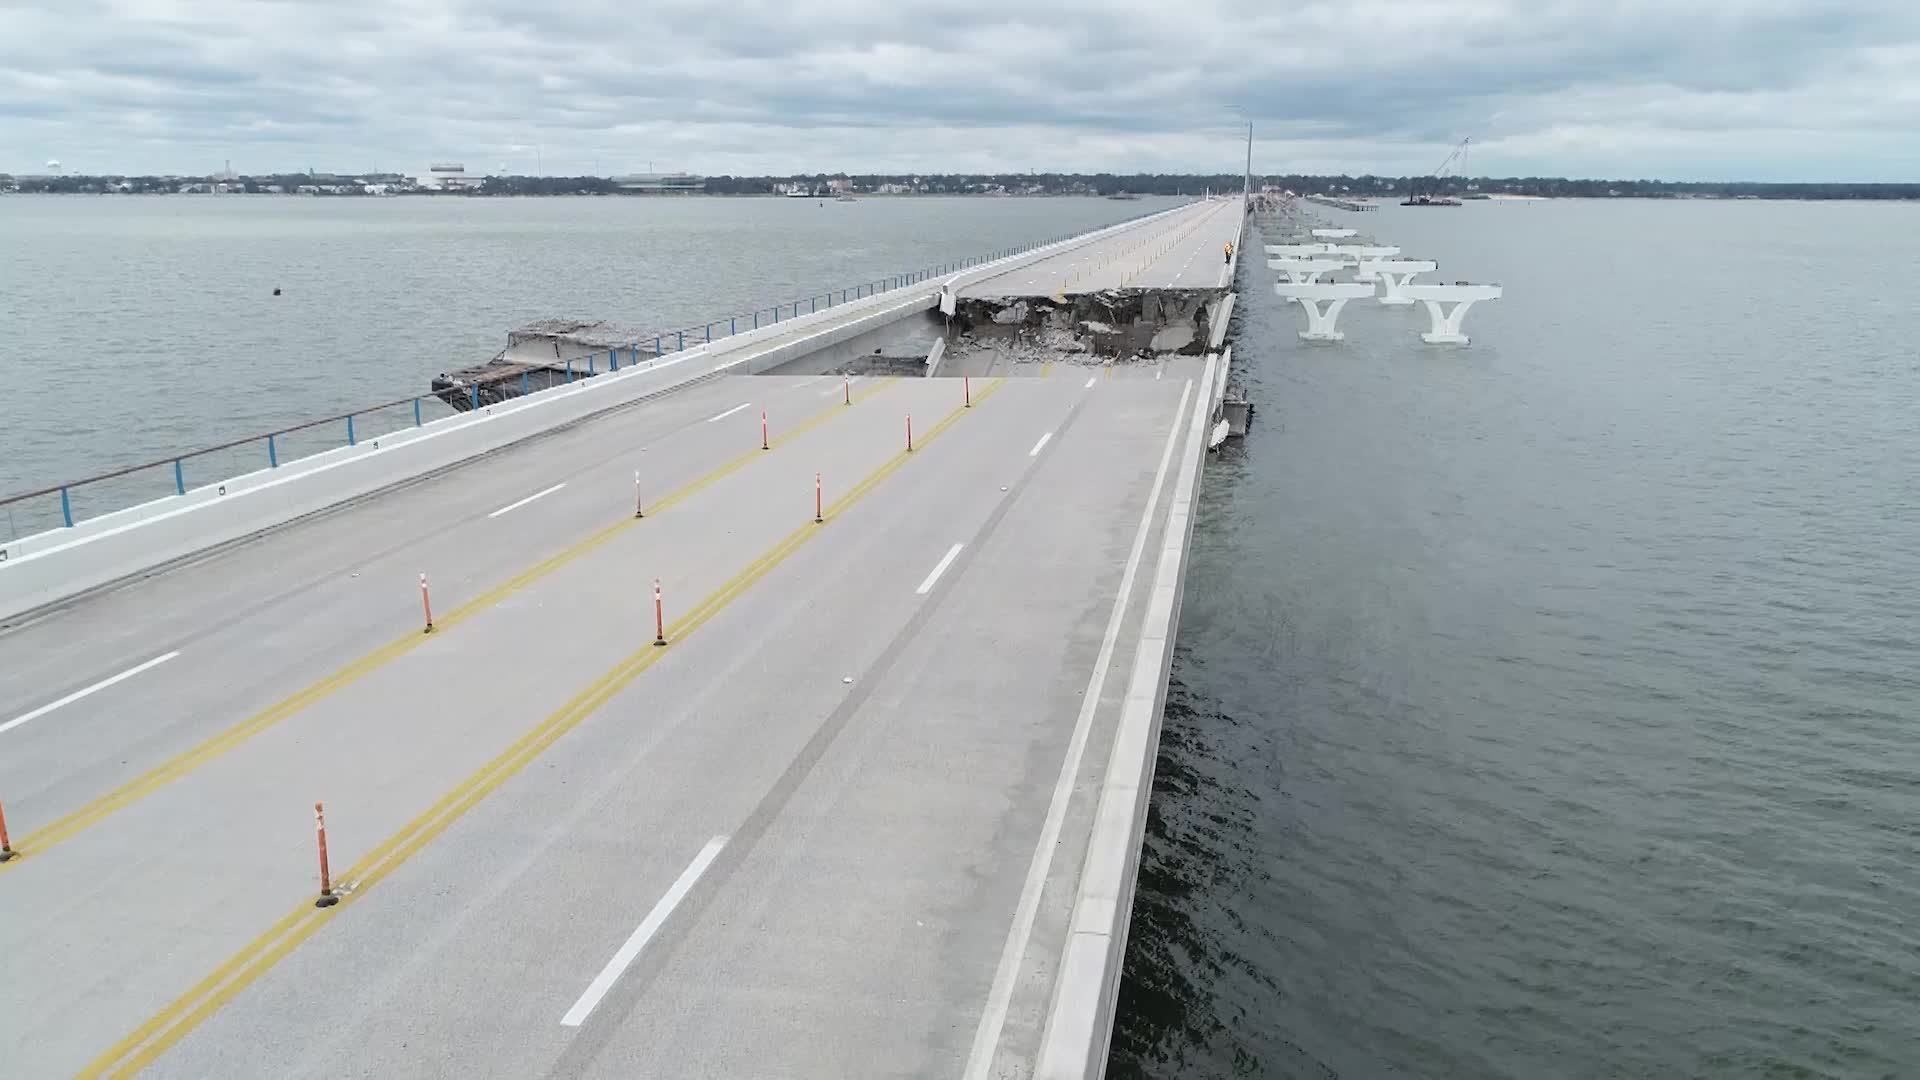 Drone Footage of Pensacola Bay Bridge Shows Extensive Damage After Hurricane Sally - Videos from The Weather Channel | weather.com